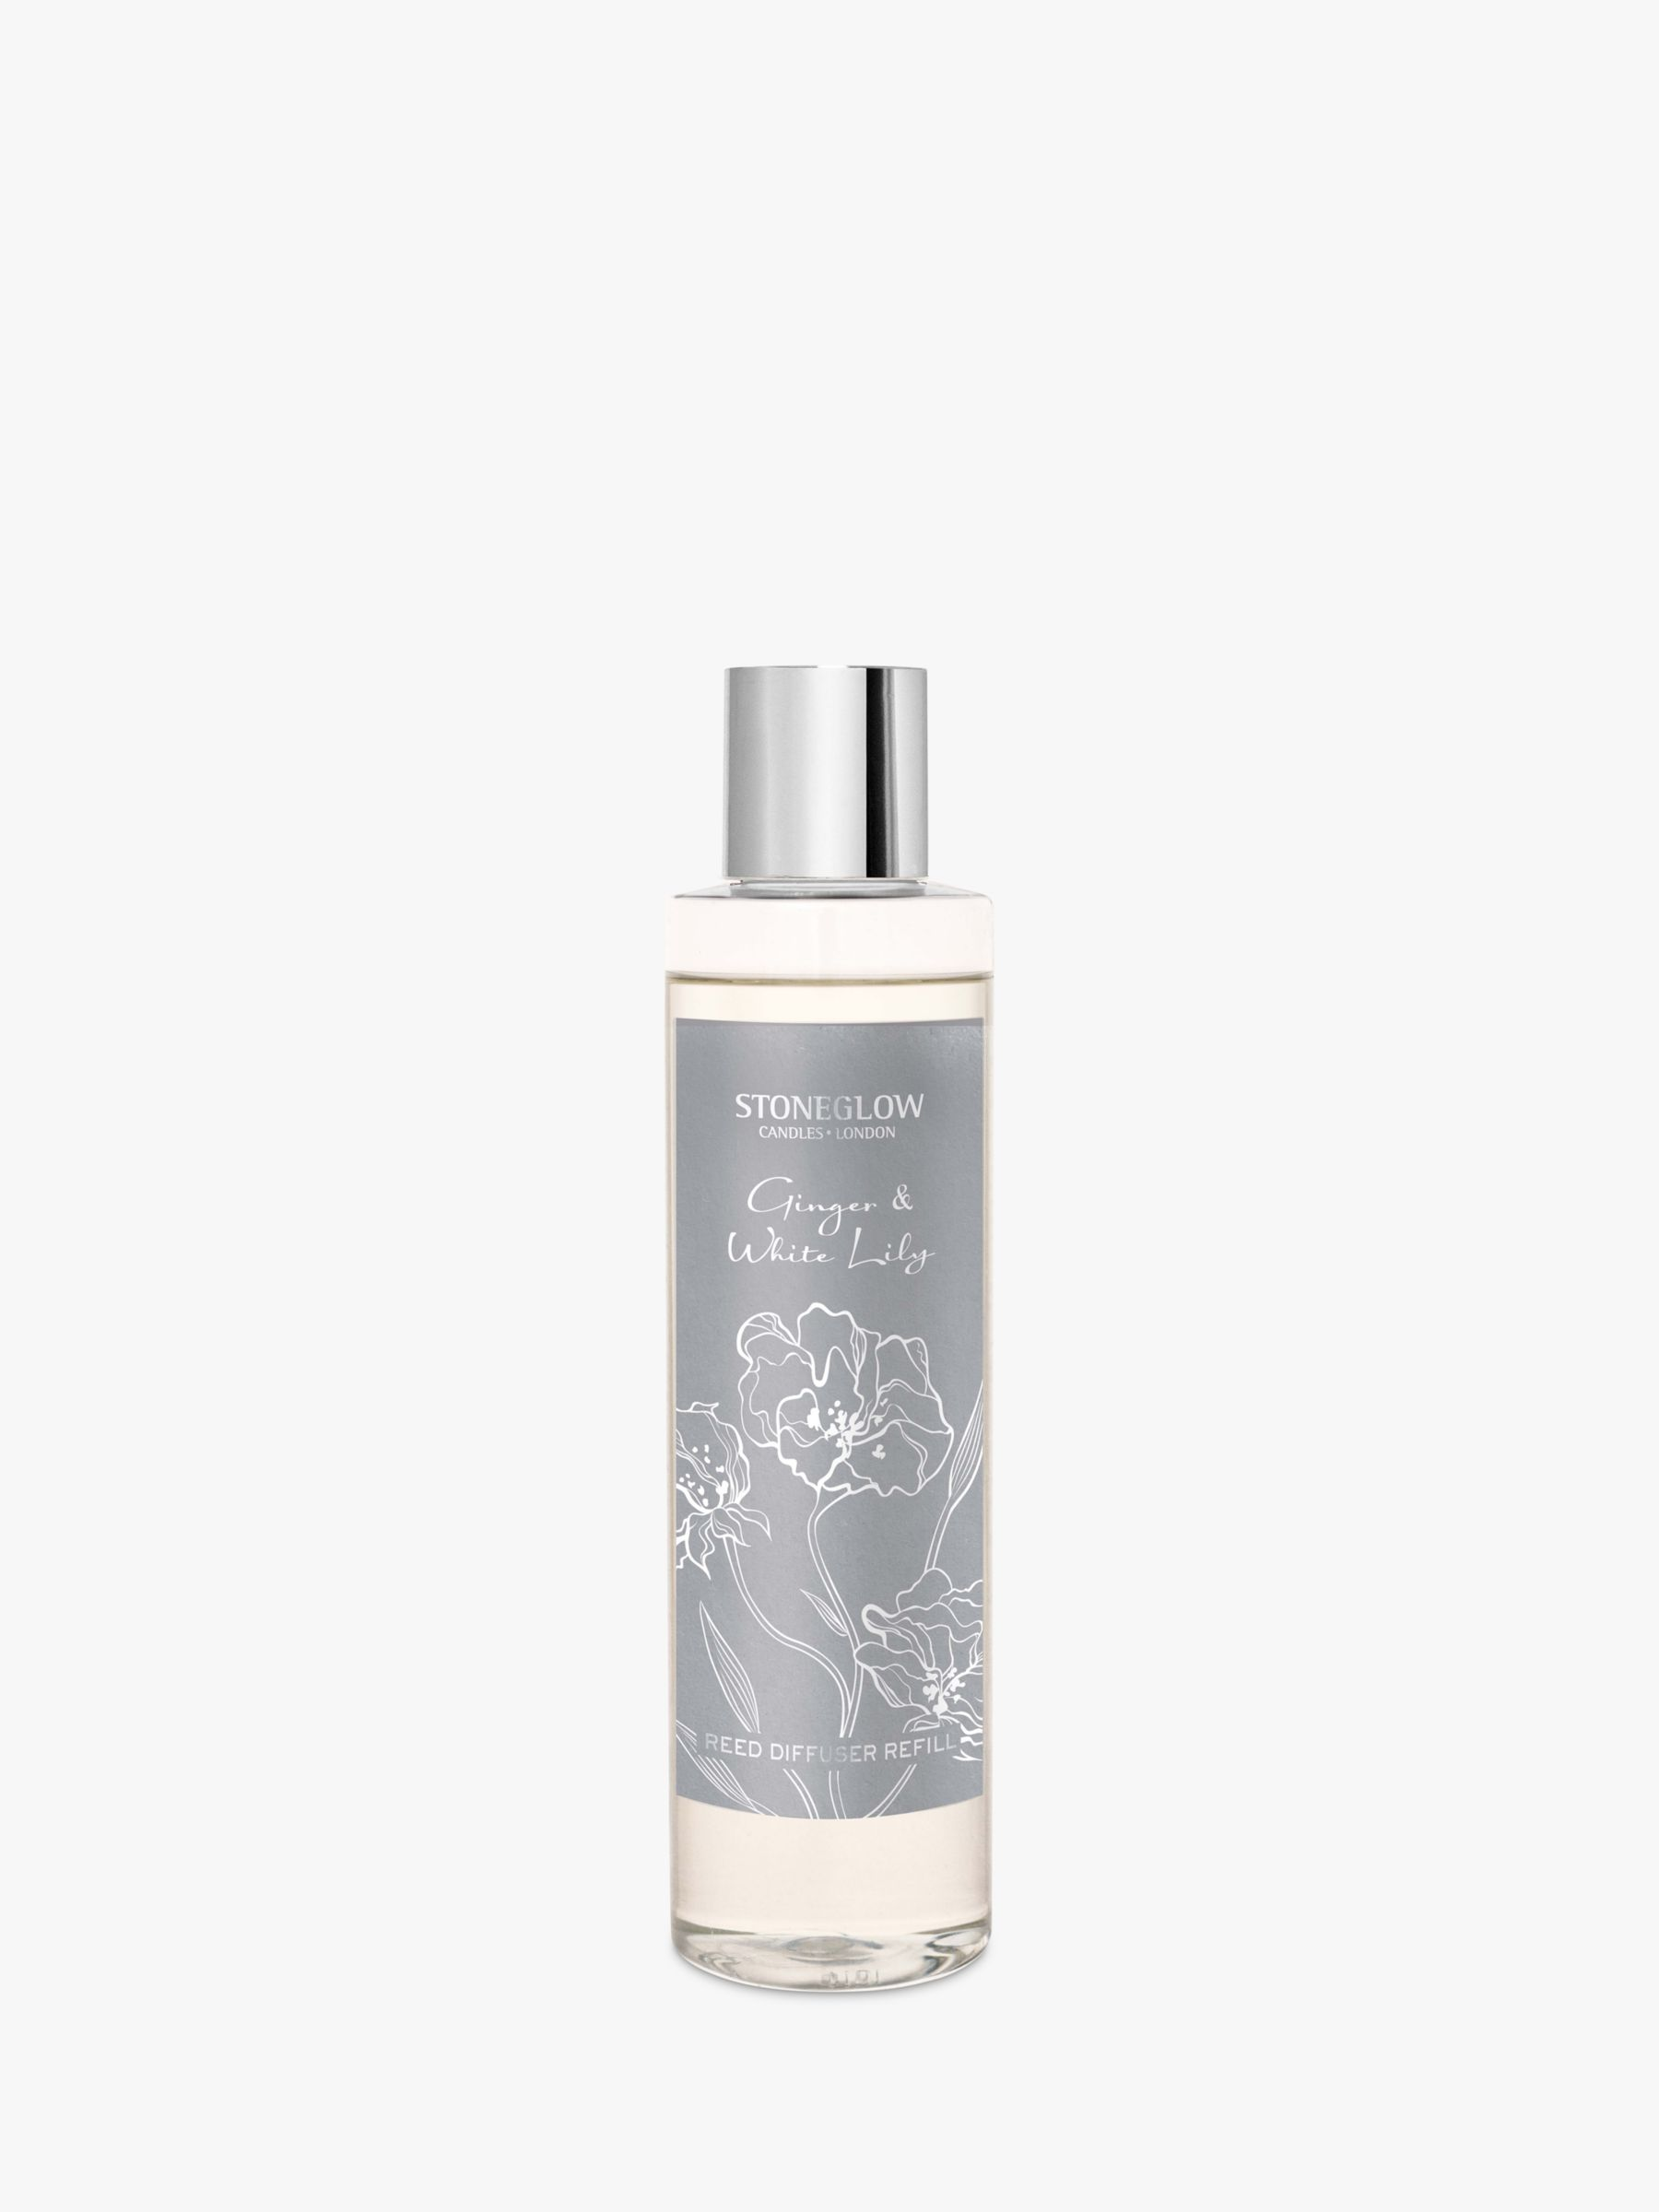 Stoneglow Stoneglow Day Flower Ginger & White Lily Diffuser Refill, 200ml